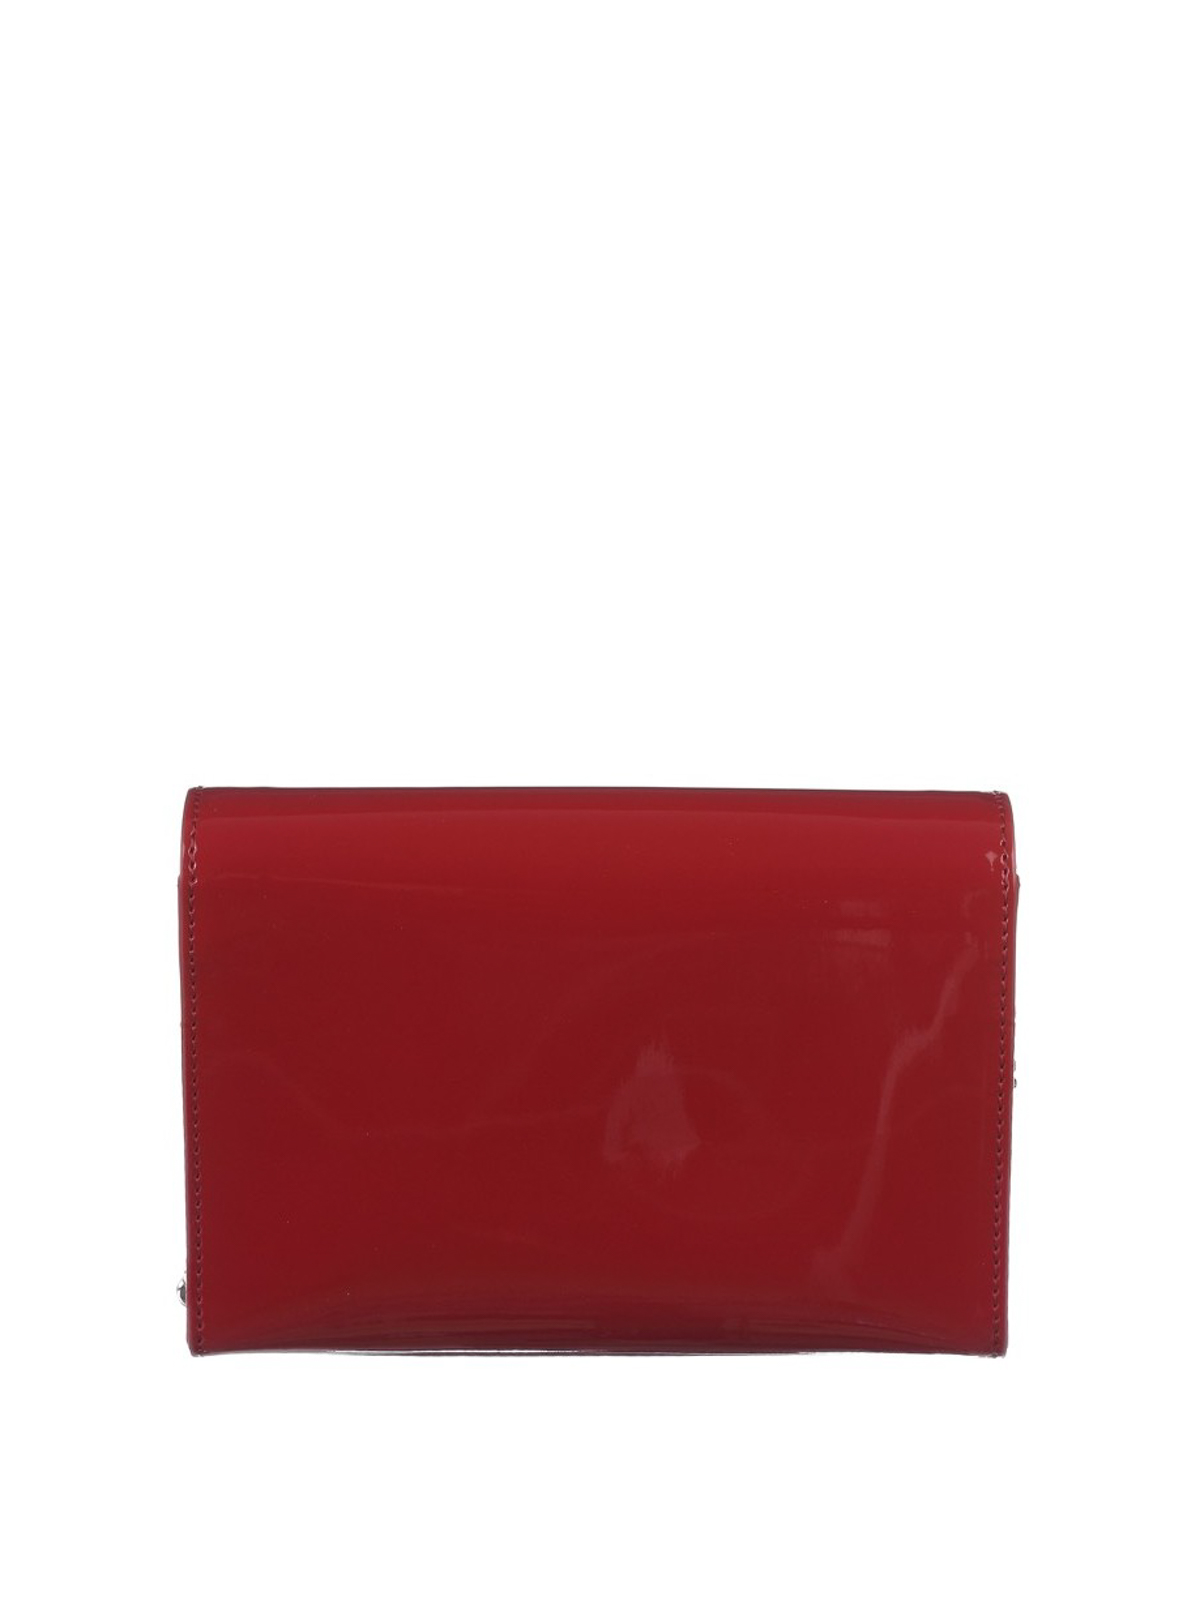 Dsquared2 Disco red leather cross body bag 7ZDSJguX